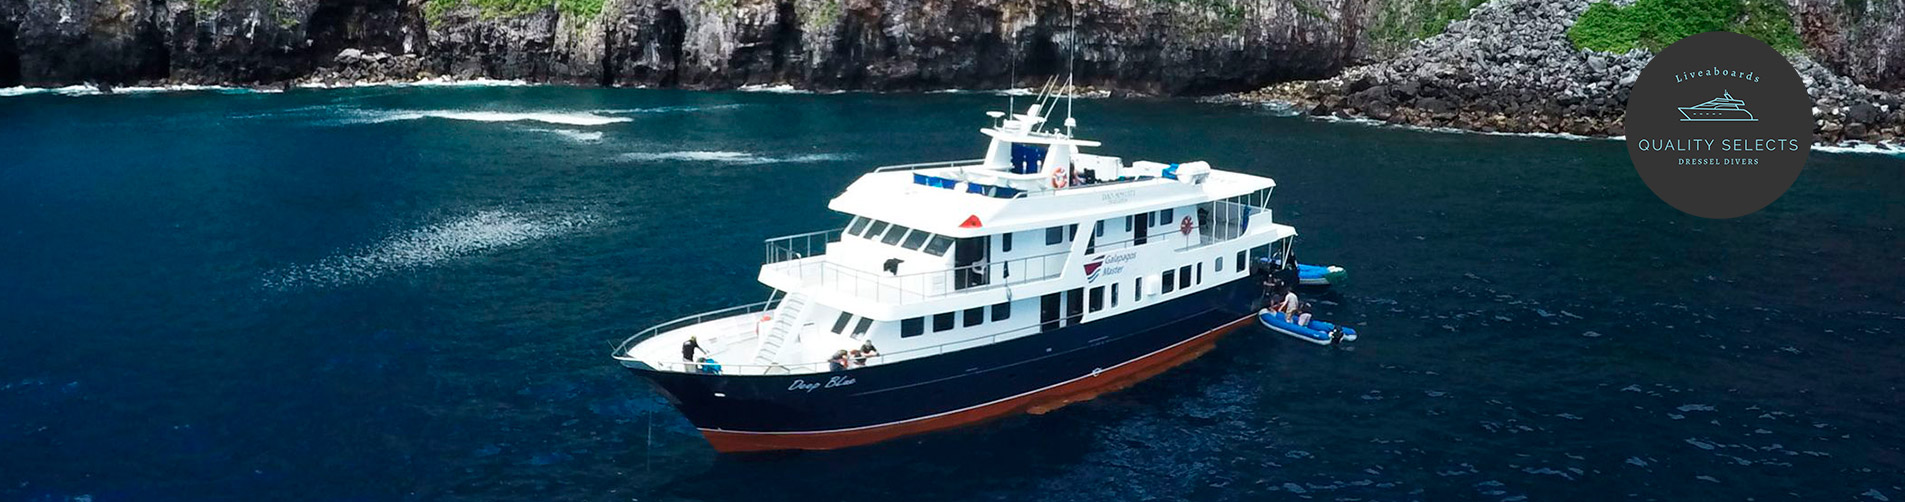 galapagos liveaboard diving - boat